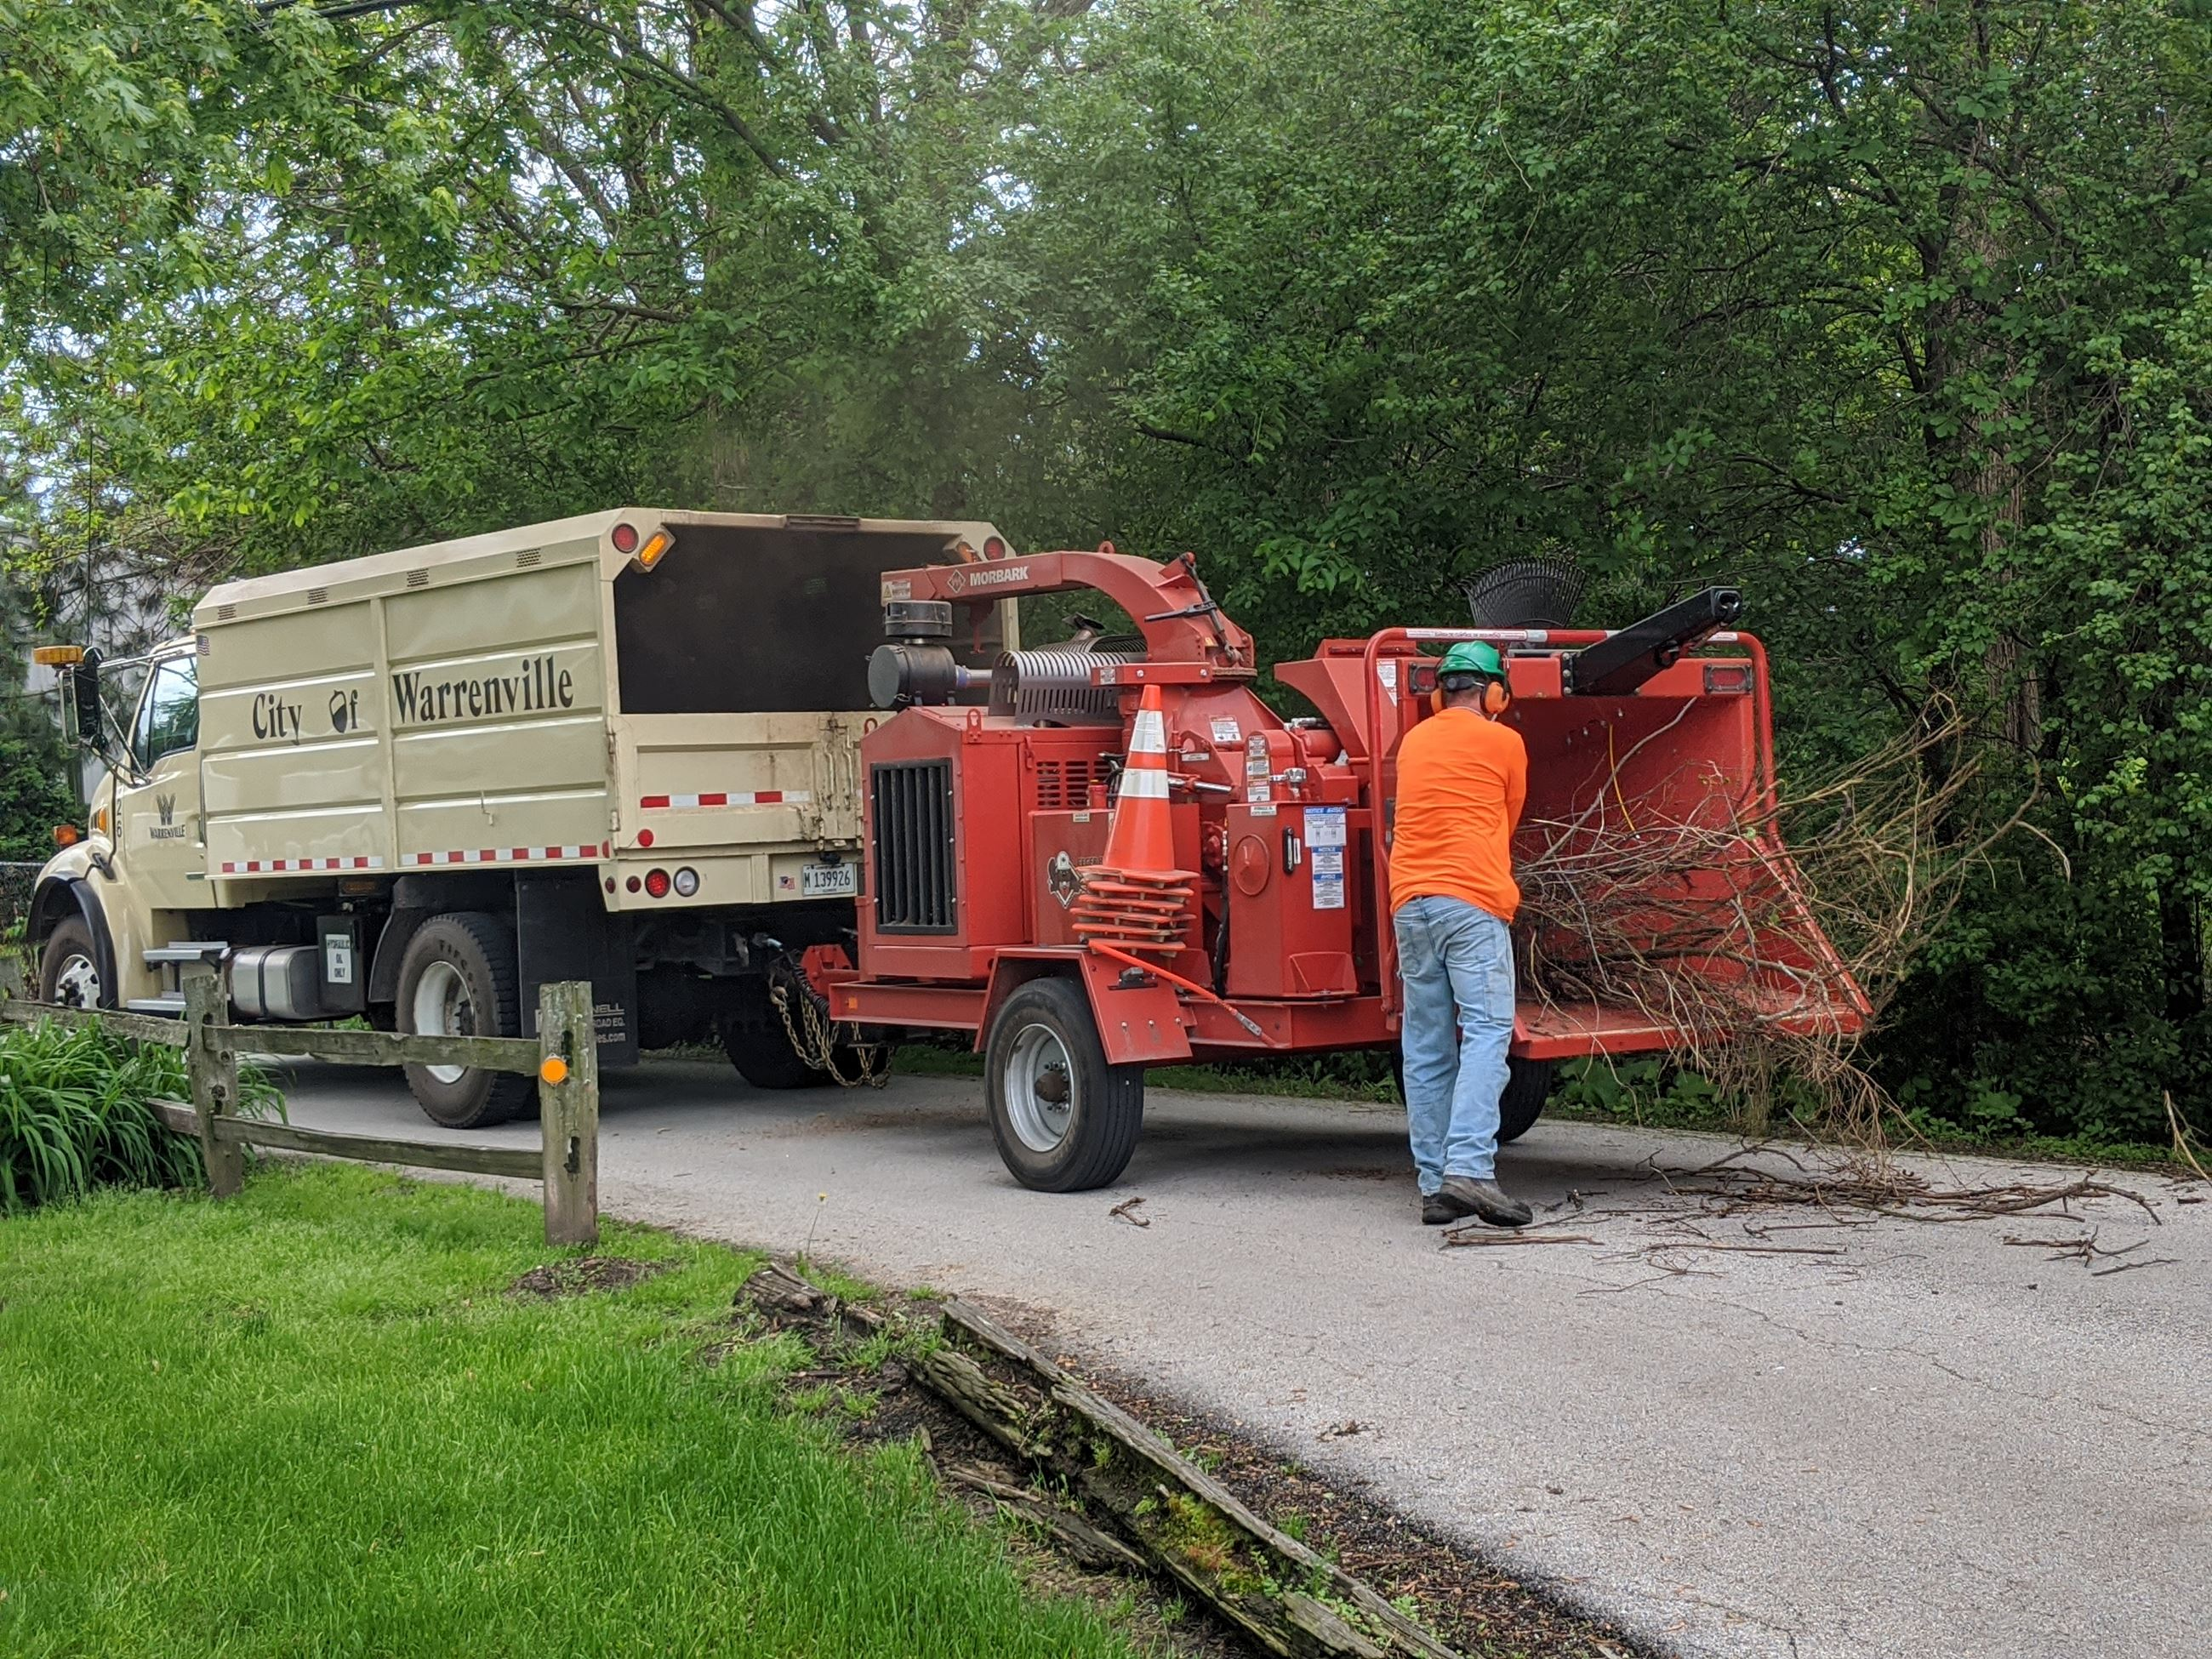 Image of Brush getting loaded into chipper truck